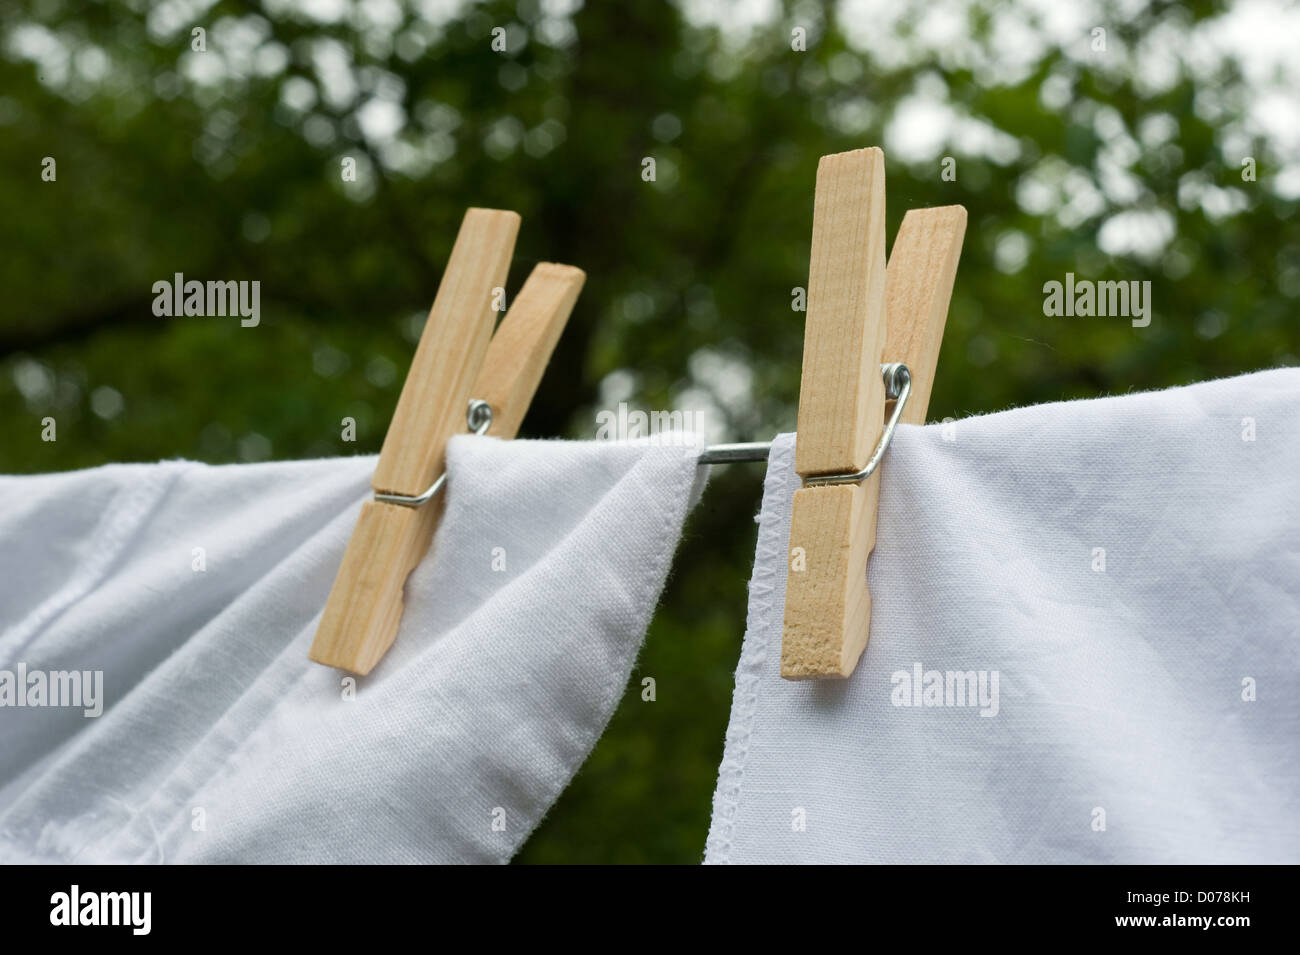 Clothes drying in the wind hanging on a clothesline held by pegs - Stock Image